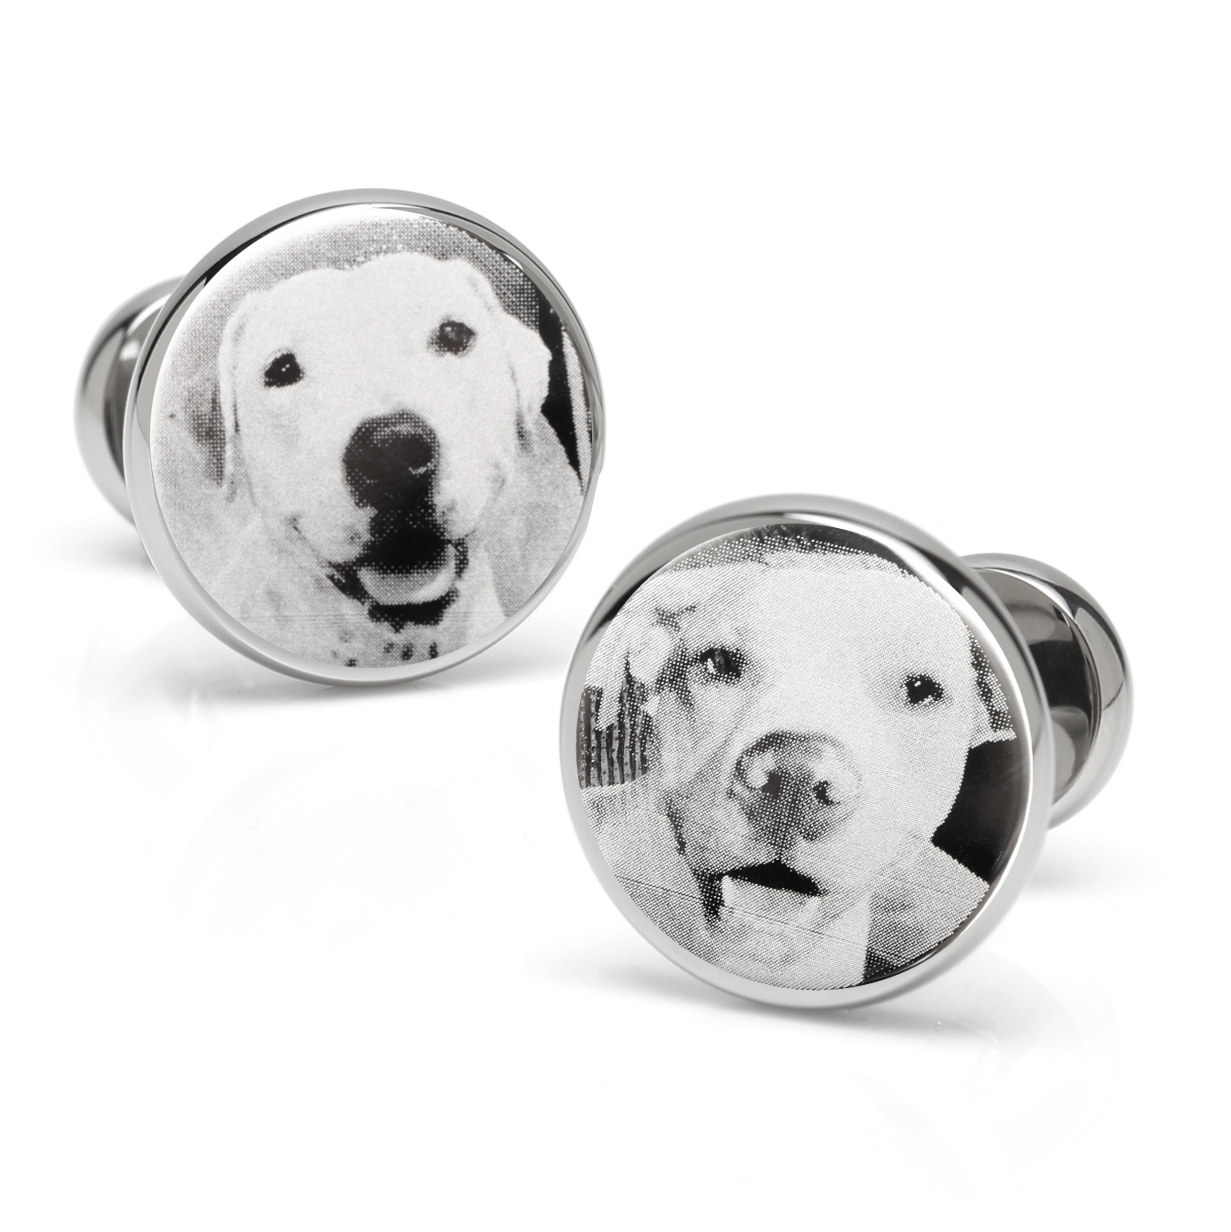 Photo Engraved Cufflinks